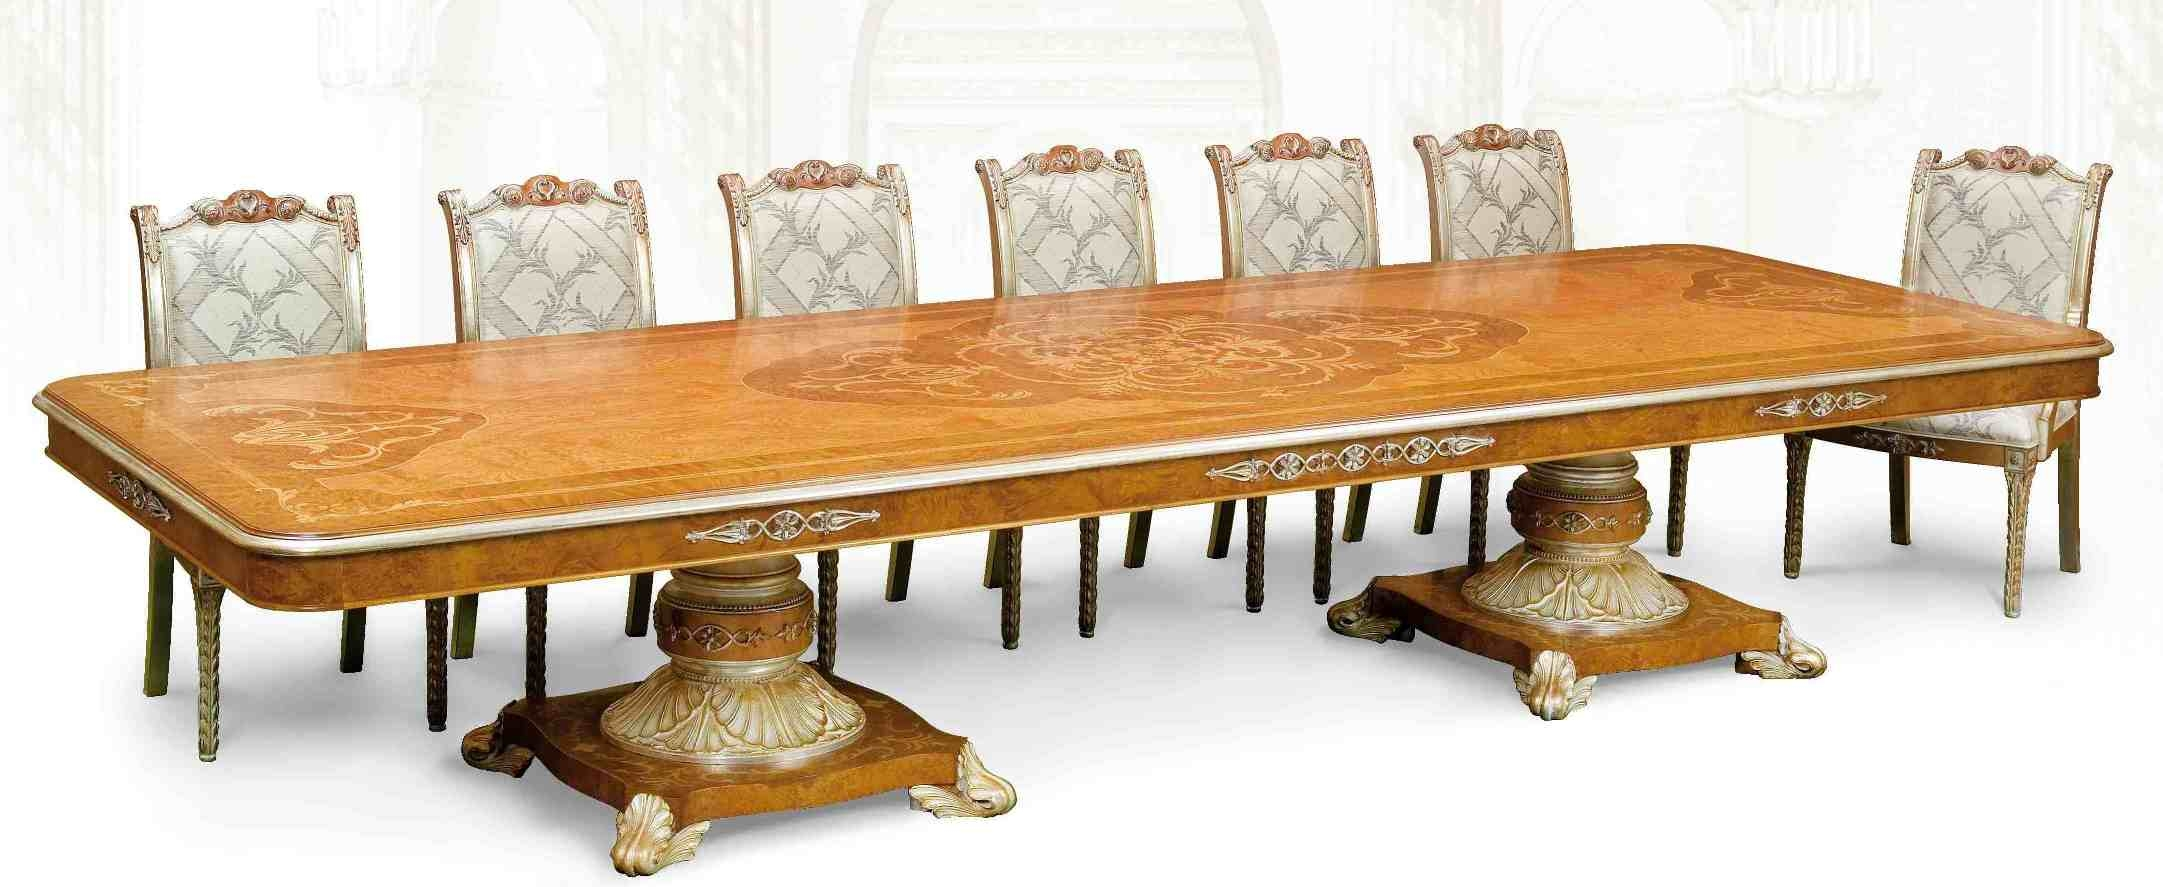 11 luxury dining furniture exquisite marquetry work for Expensive dining tables